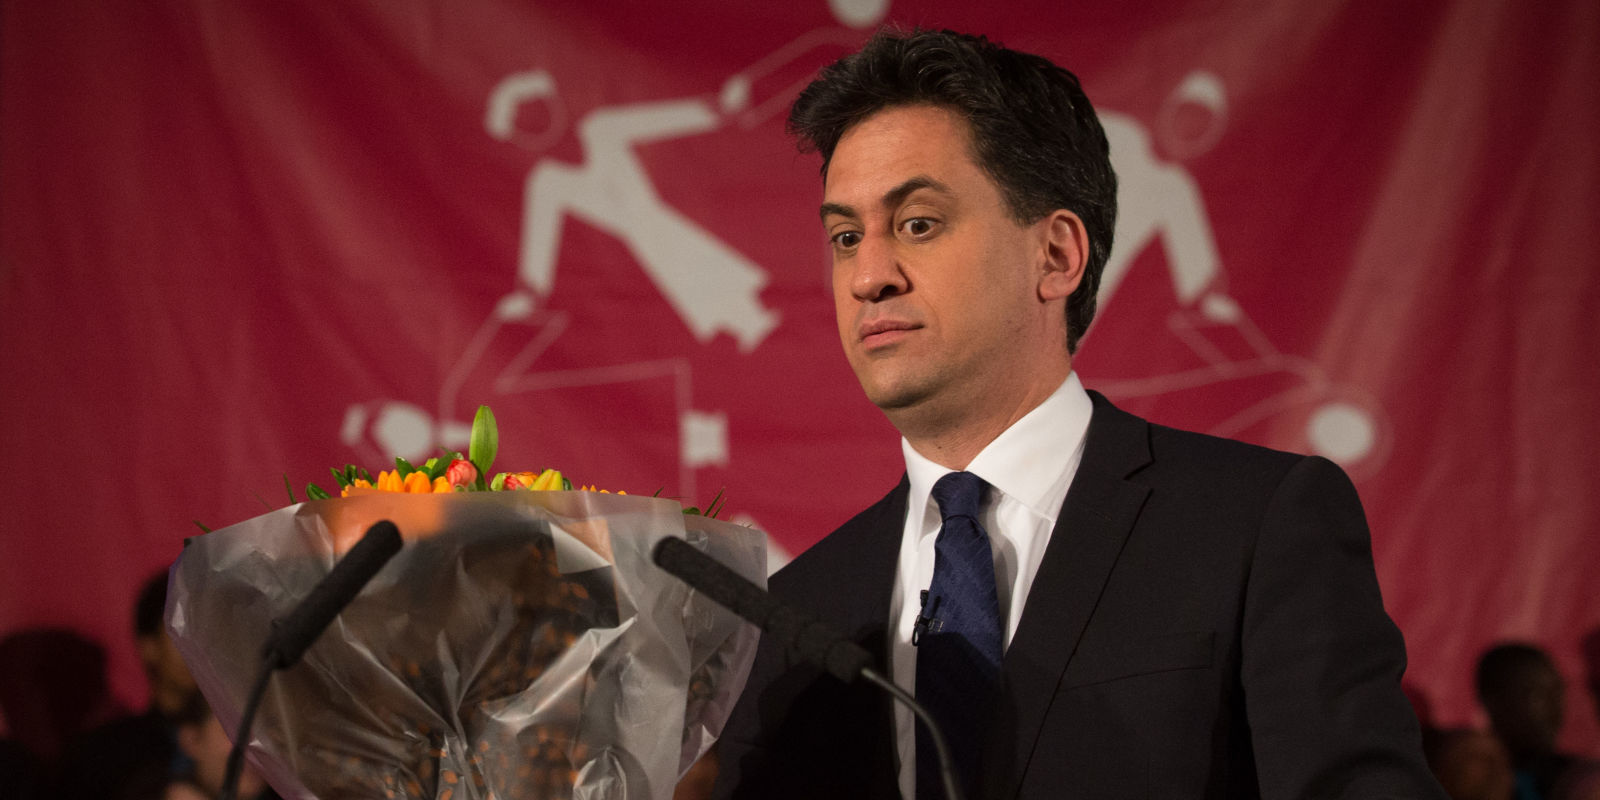 Listen to Ed Miliband attempt a death metal scream